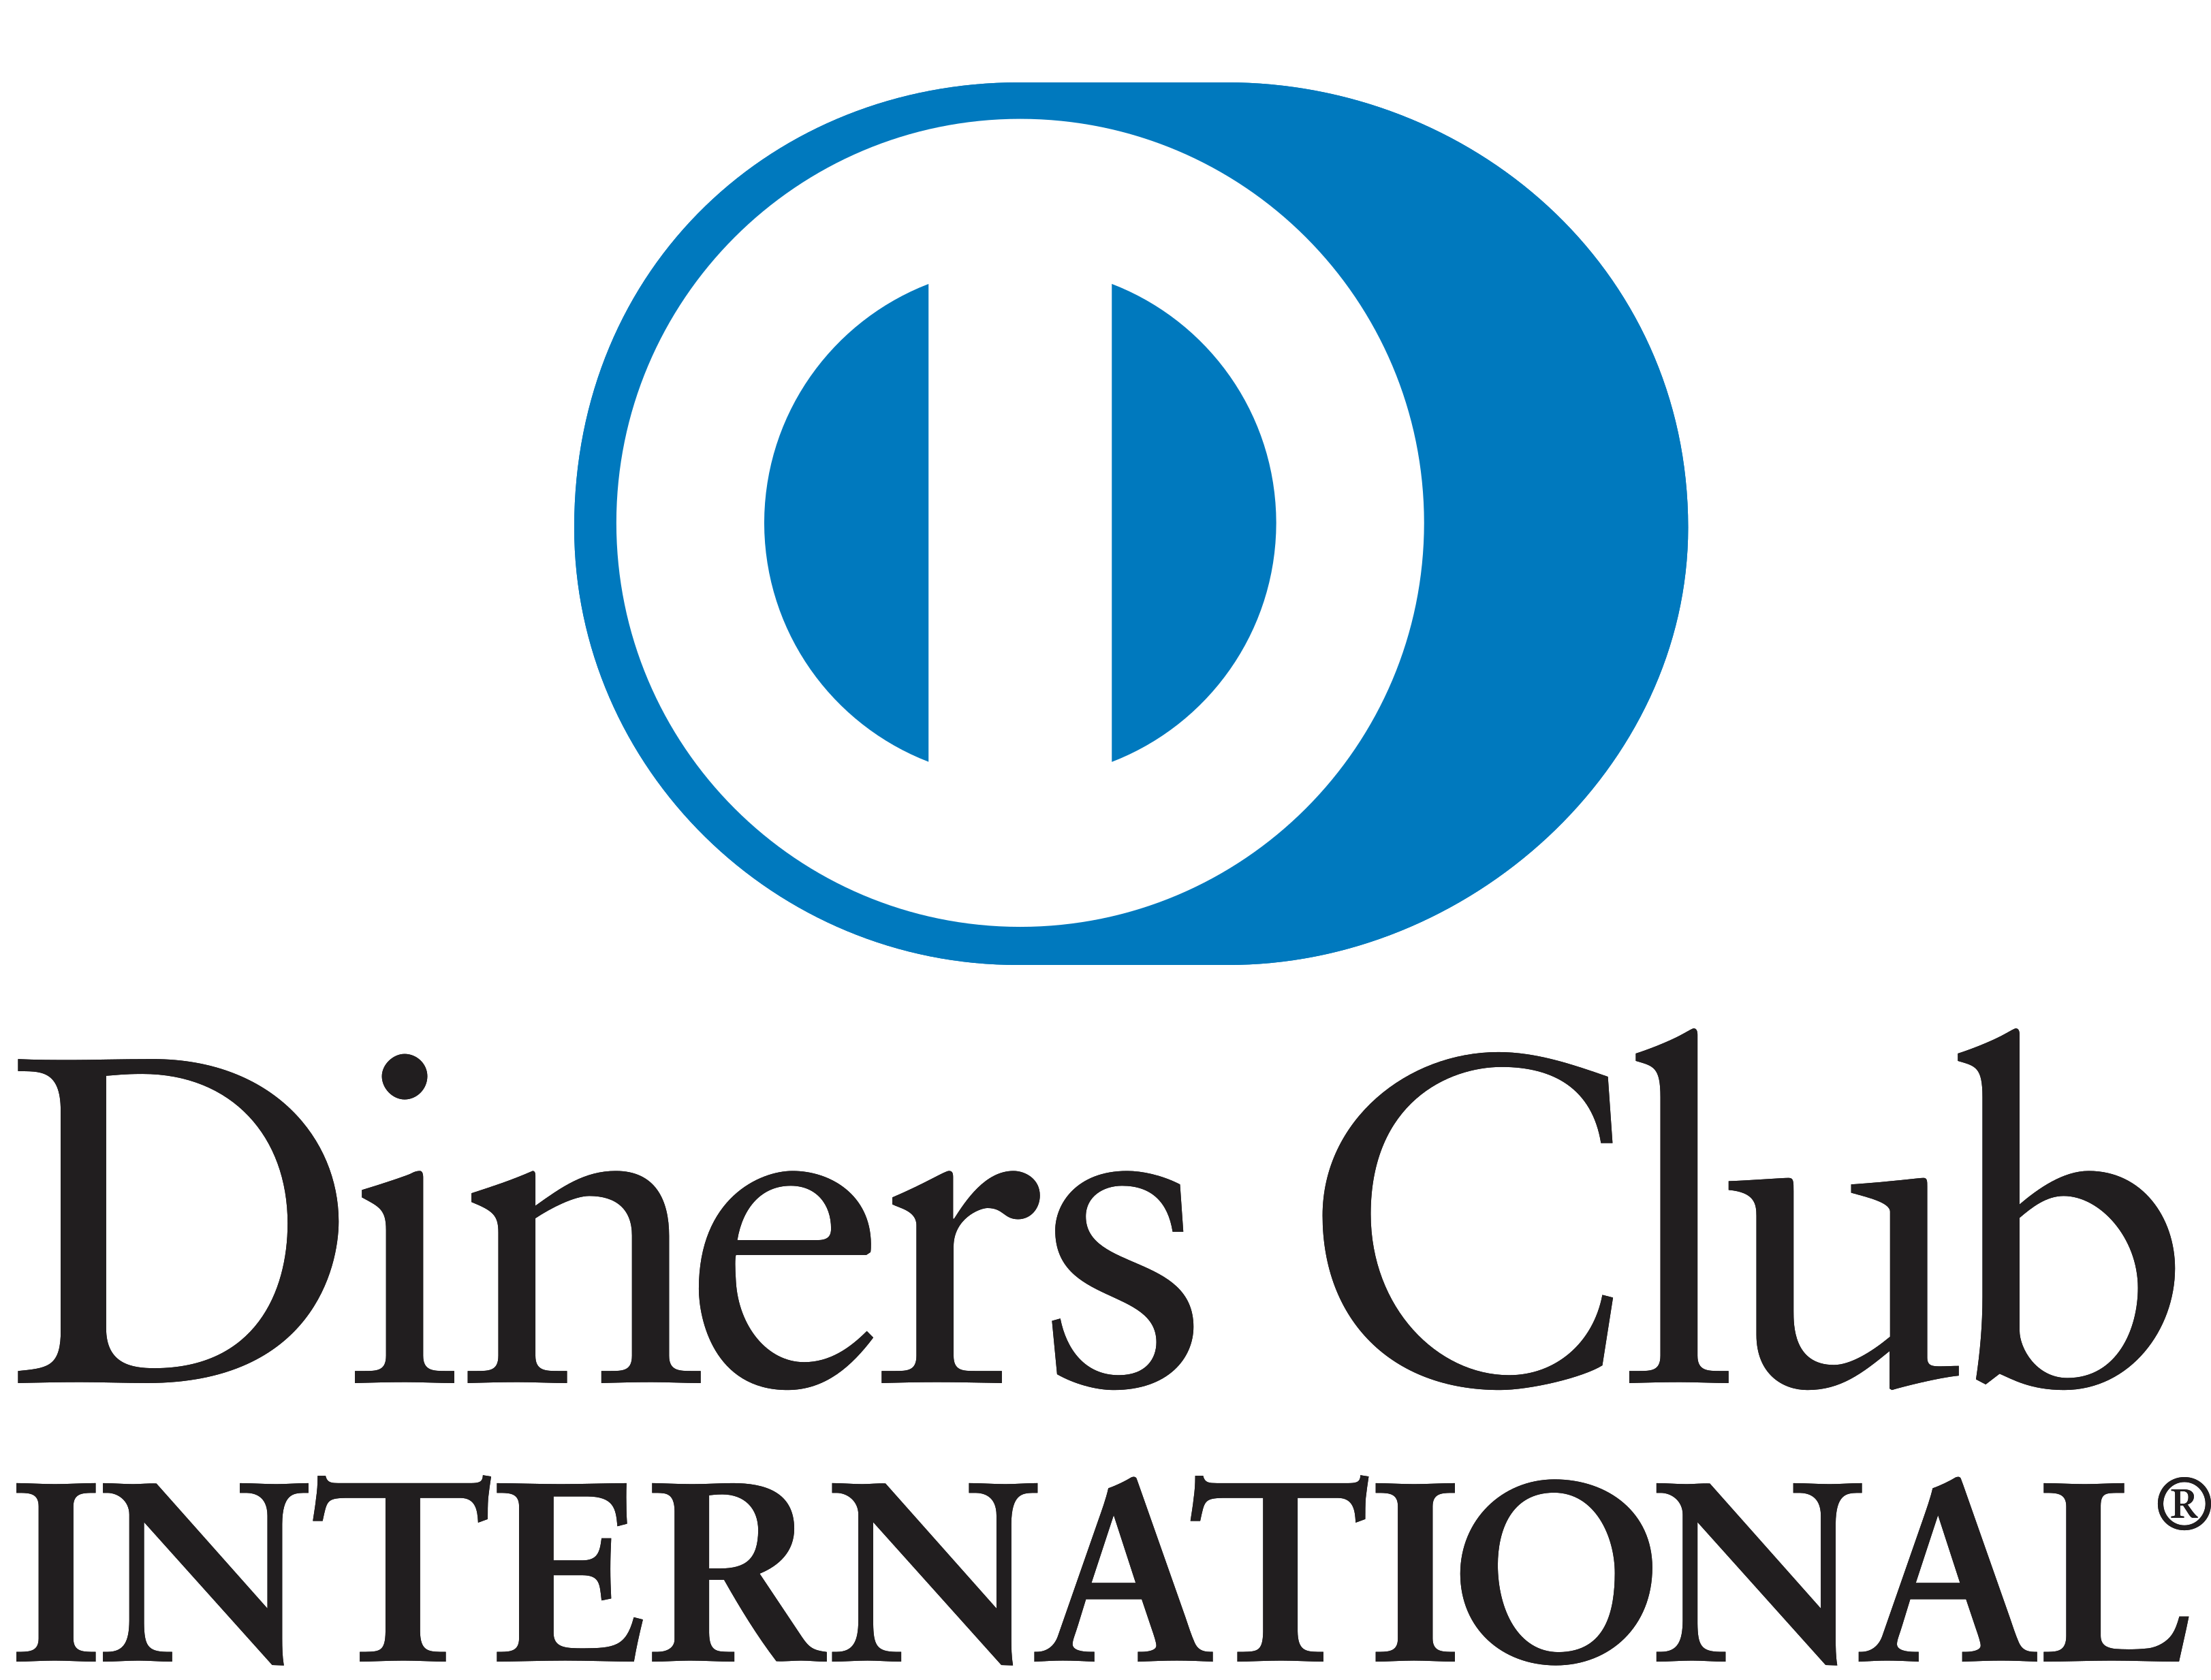 Diners club logo clipart image library stock Diners club png clipart images gallery for free download | MyReal ... image library stock